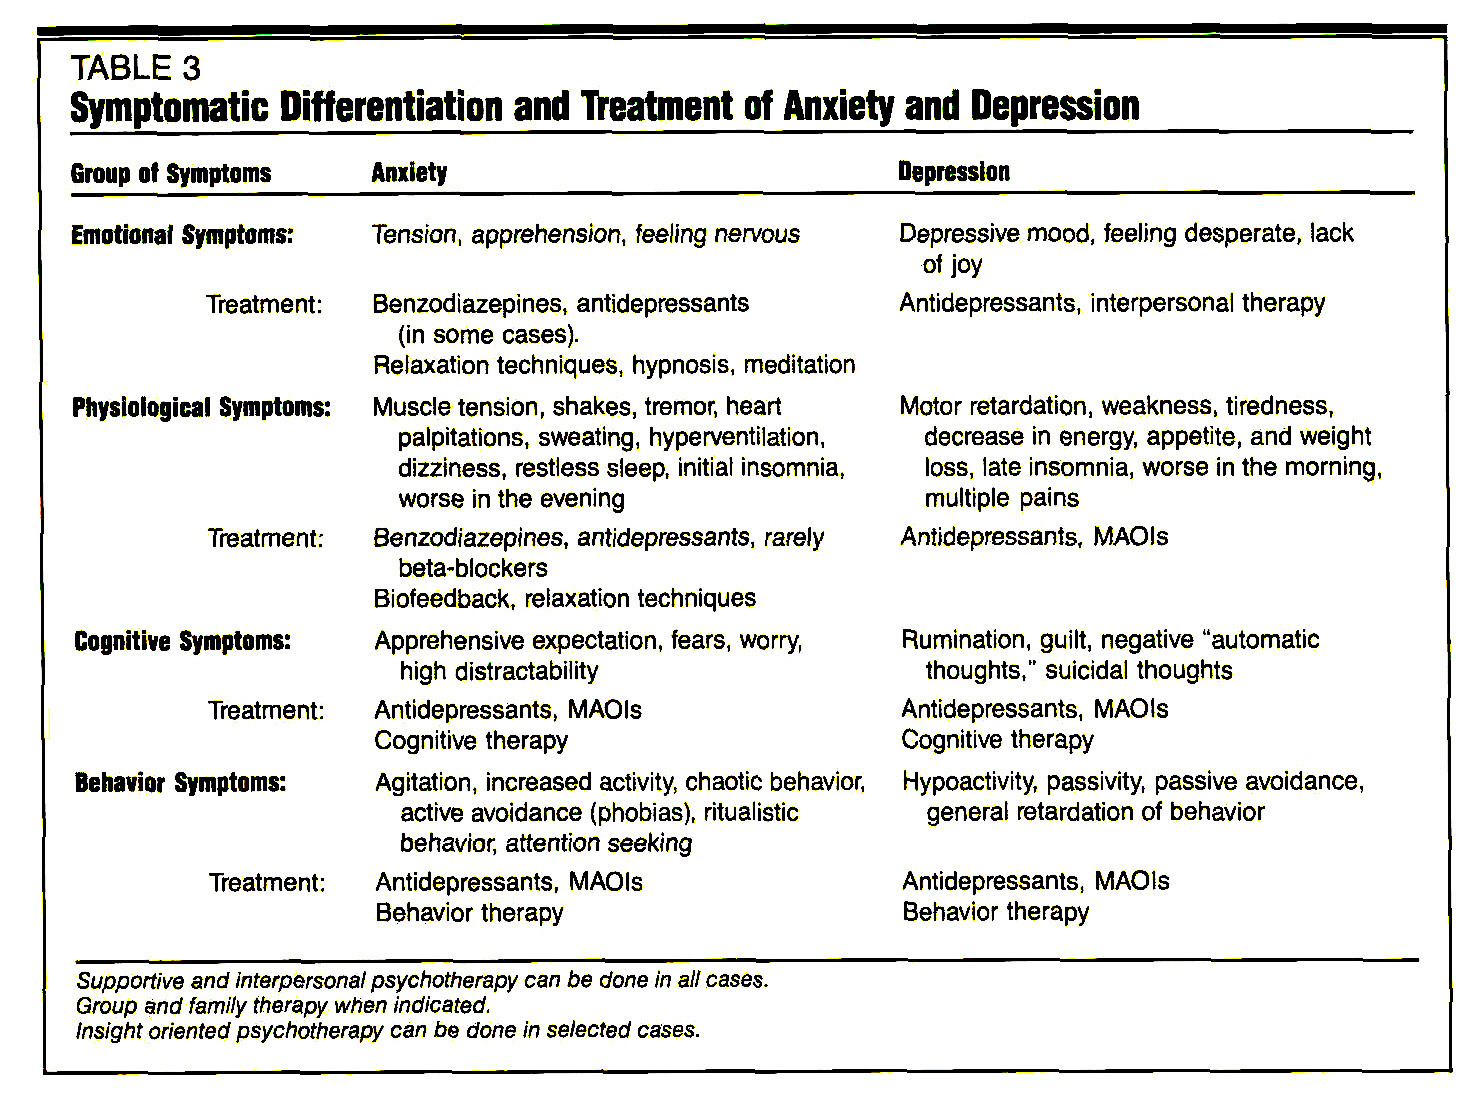 Interrelationships Between Major Depression and the Anxiety